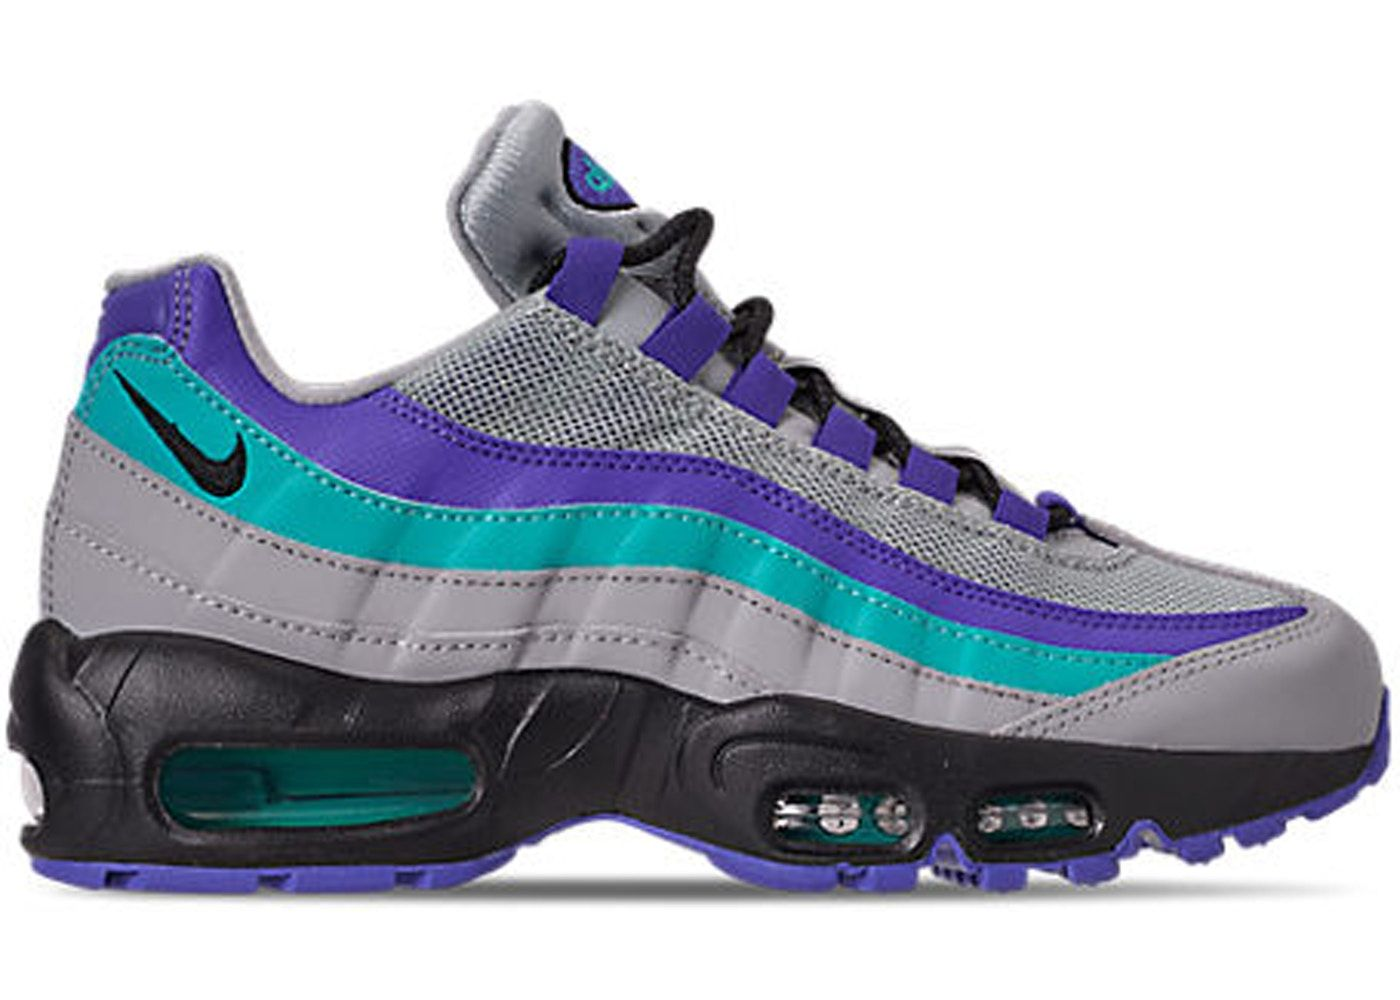 latest shoes for cheap elegant shoes Nike Air Max 95 Wolf Grey Grape | Air max 95, Air max, Nike air max